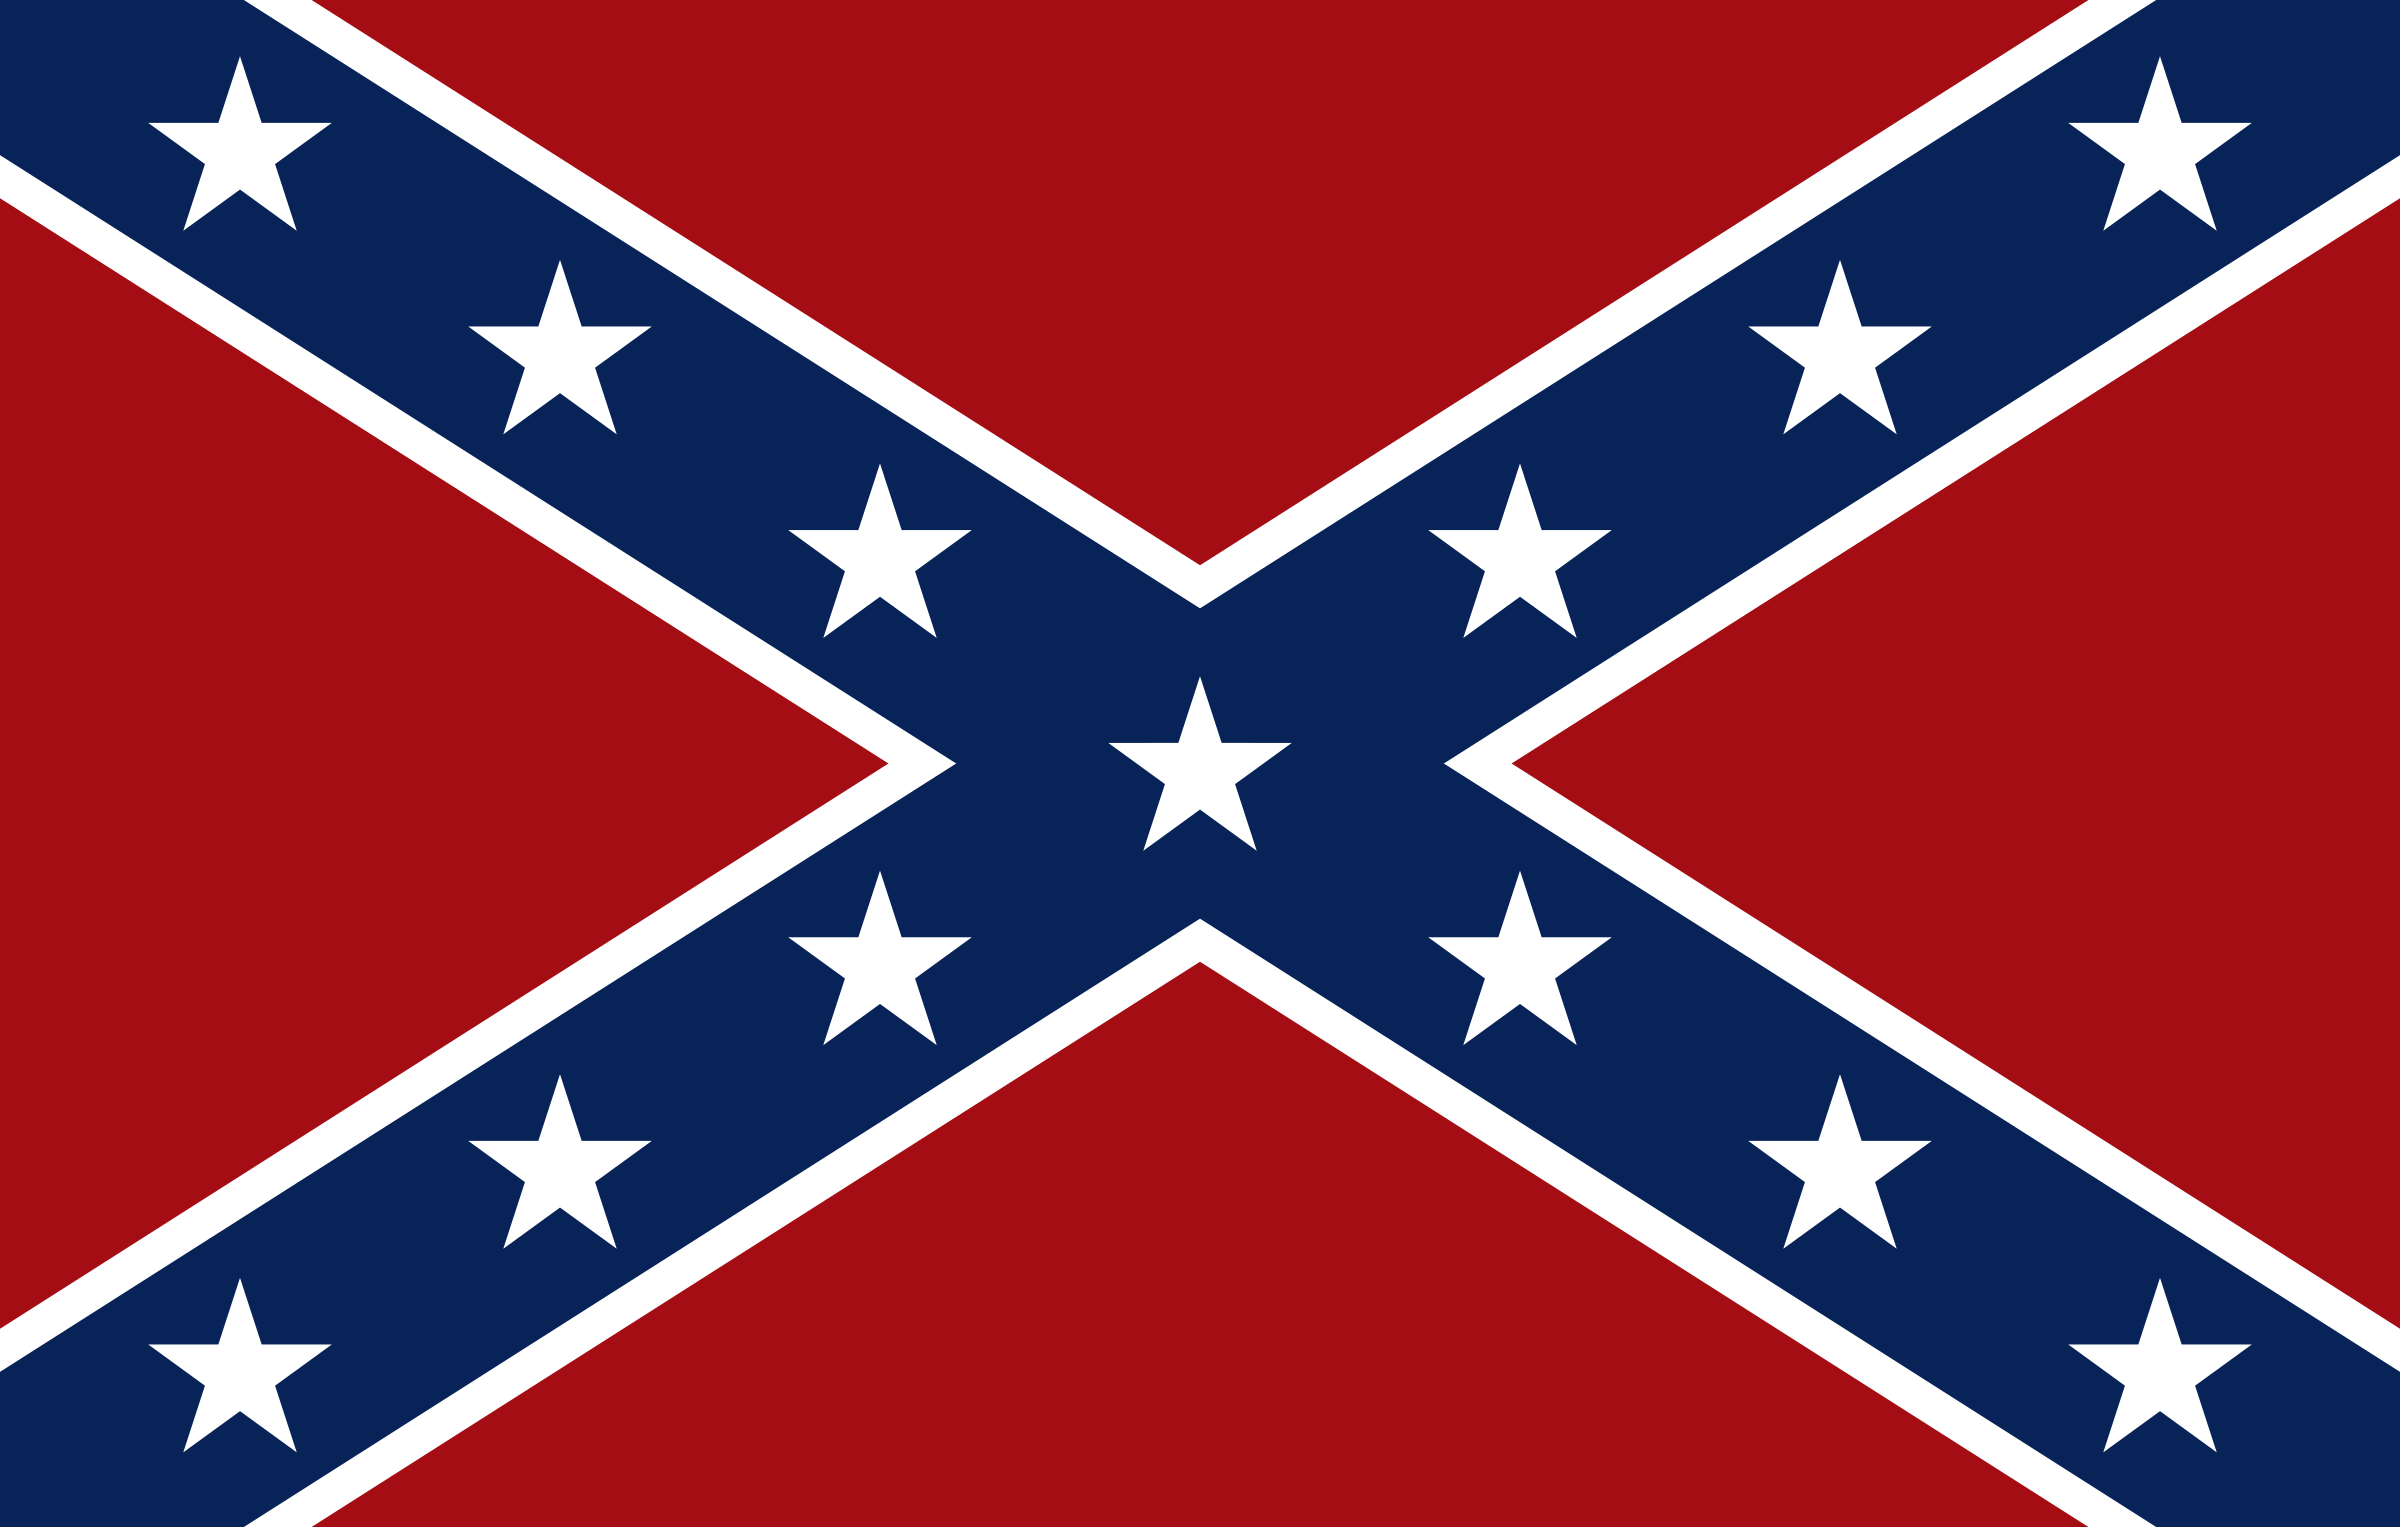 Confederate Flag by j4p4n